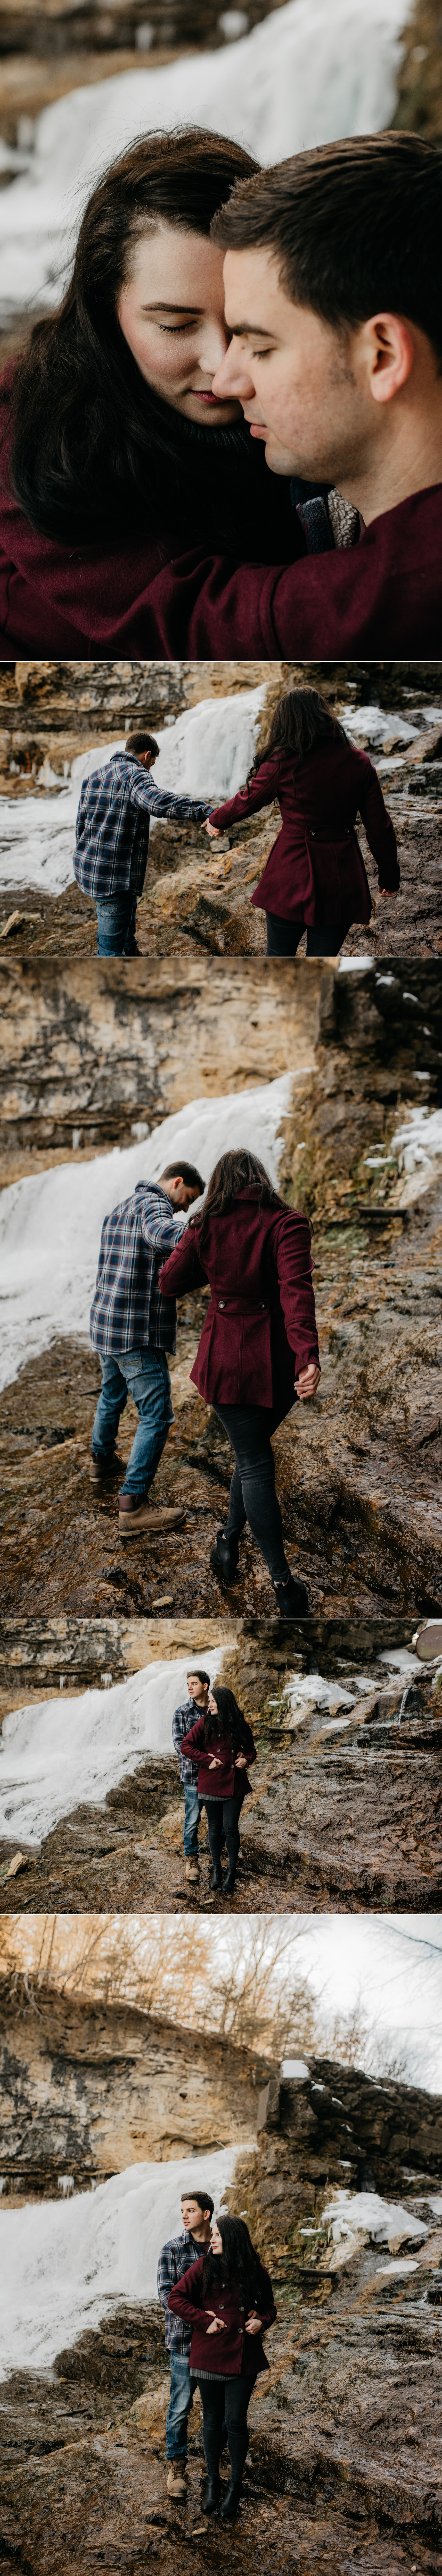 austin-minneapolis-elopement-photographer-willow-river-spain-france-costa-rica-best-family-affordable_0022.jpg